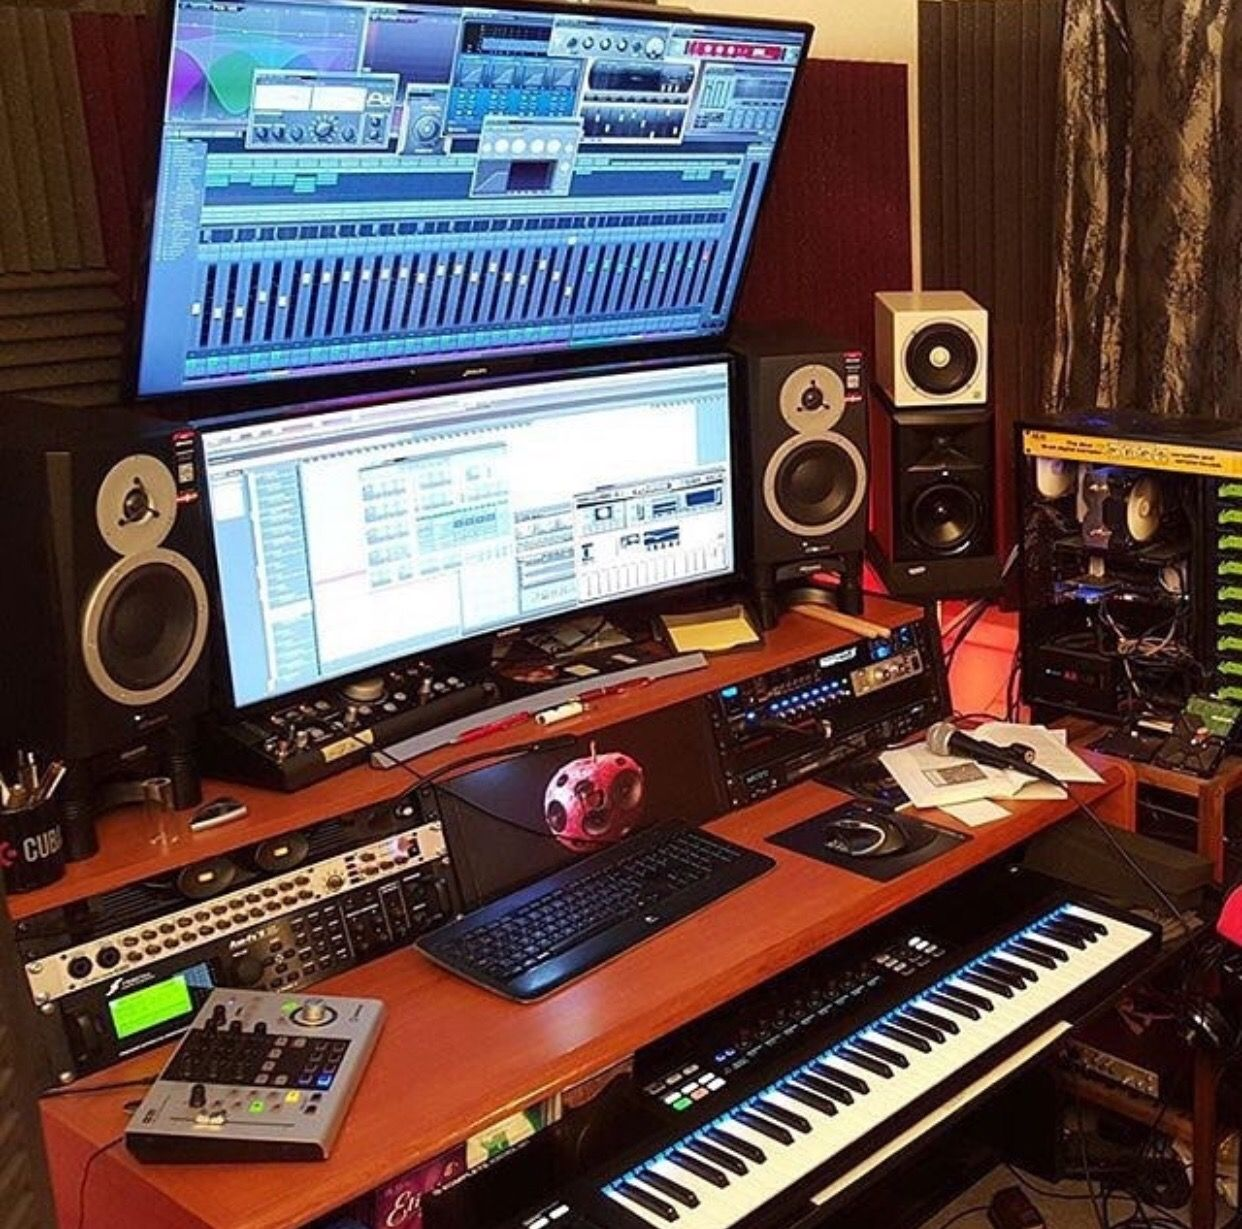 Pin by Mean Gene on COOL RECORDING STUDIO SETUPS in 2019